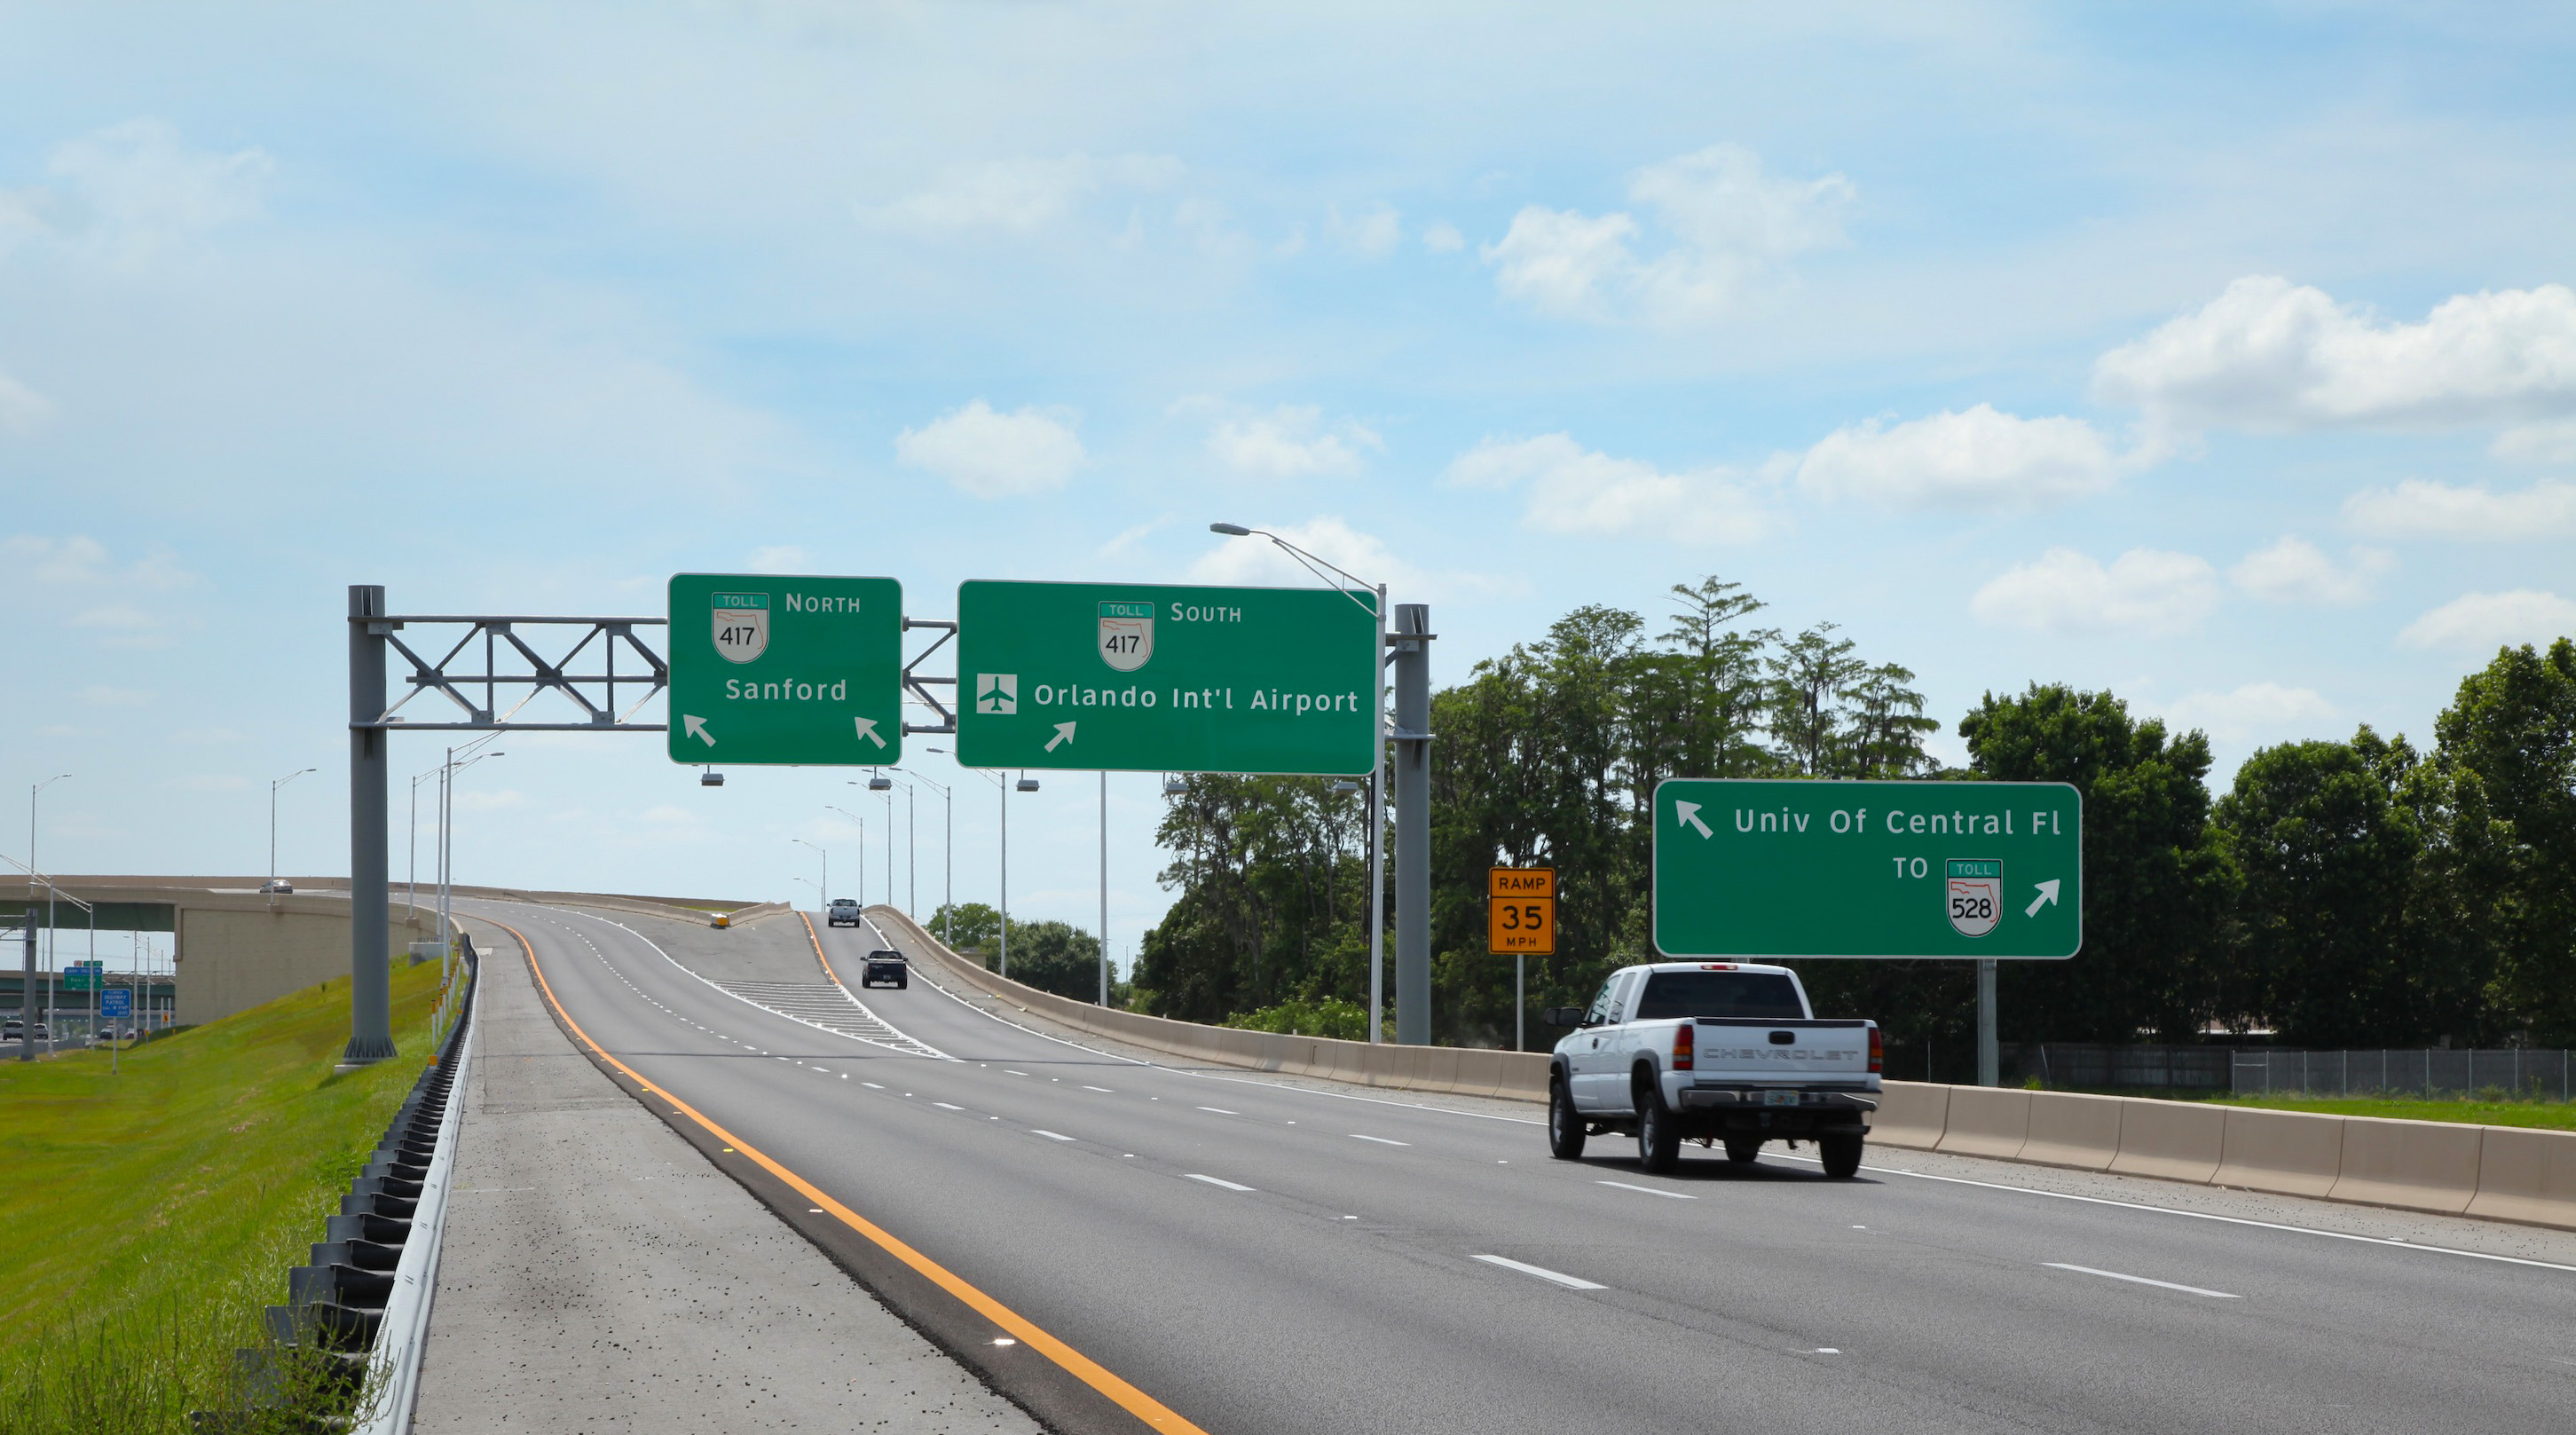 State Road 417 exchange. Road splits left 417 North to Sanford, right 417 South to Orlando International Airport